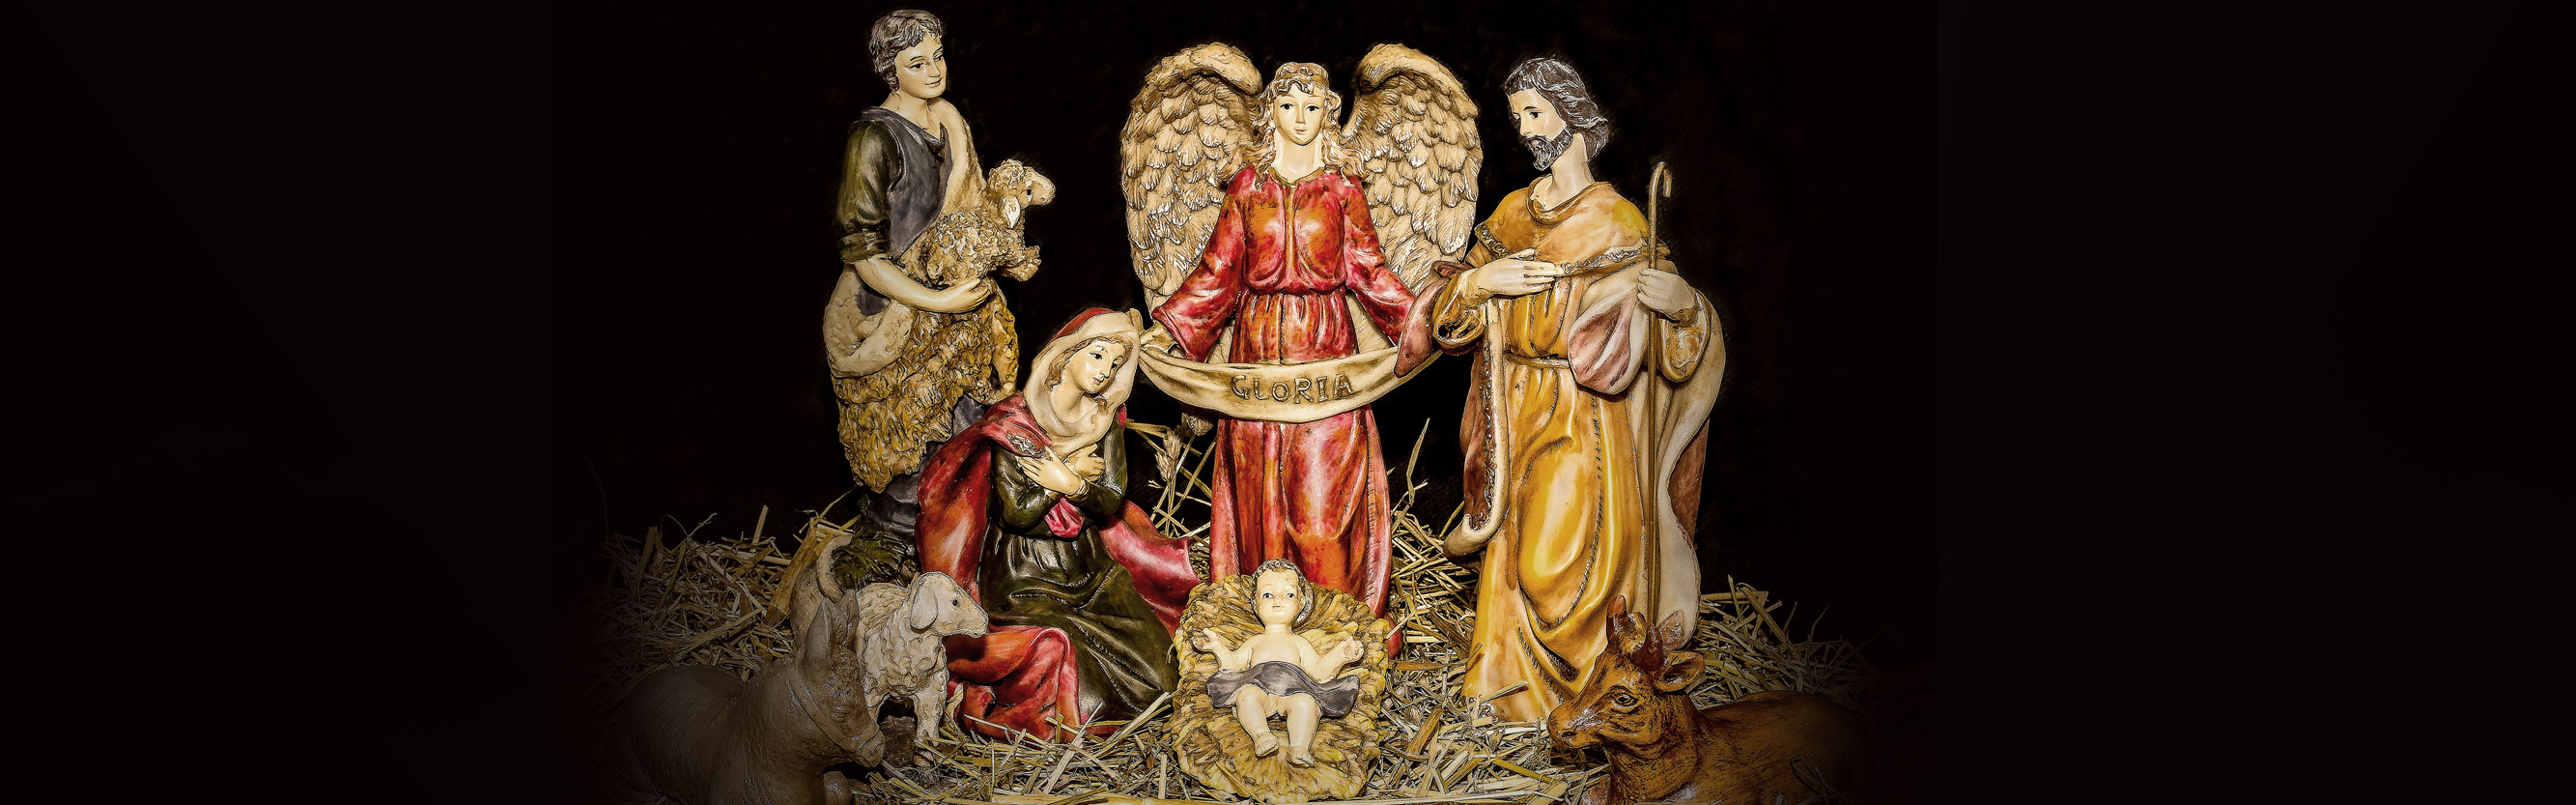 """Behold, the virgin shall be with child, and bear a son, and they shall call His name Immanuel. Which is translated, 'God with us.'"""